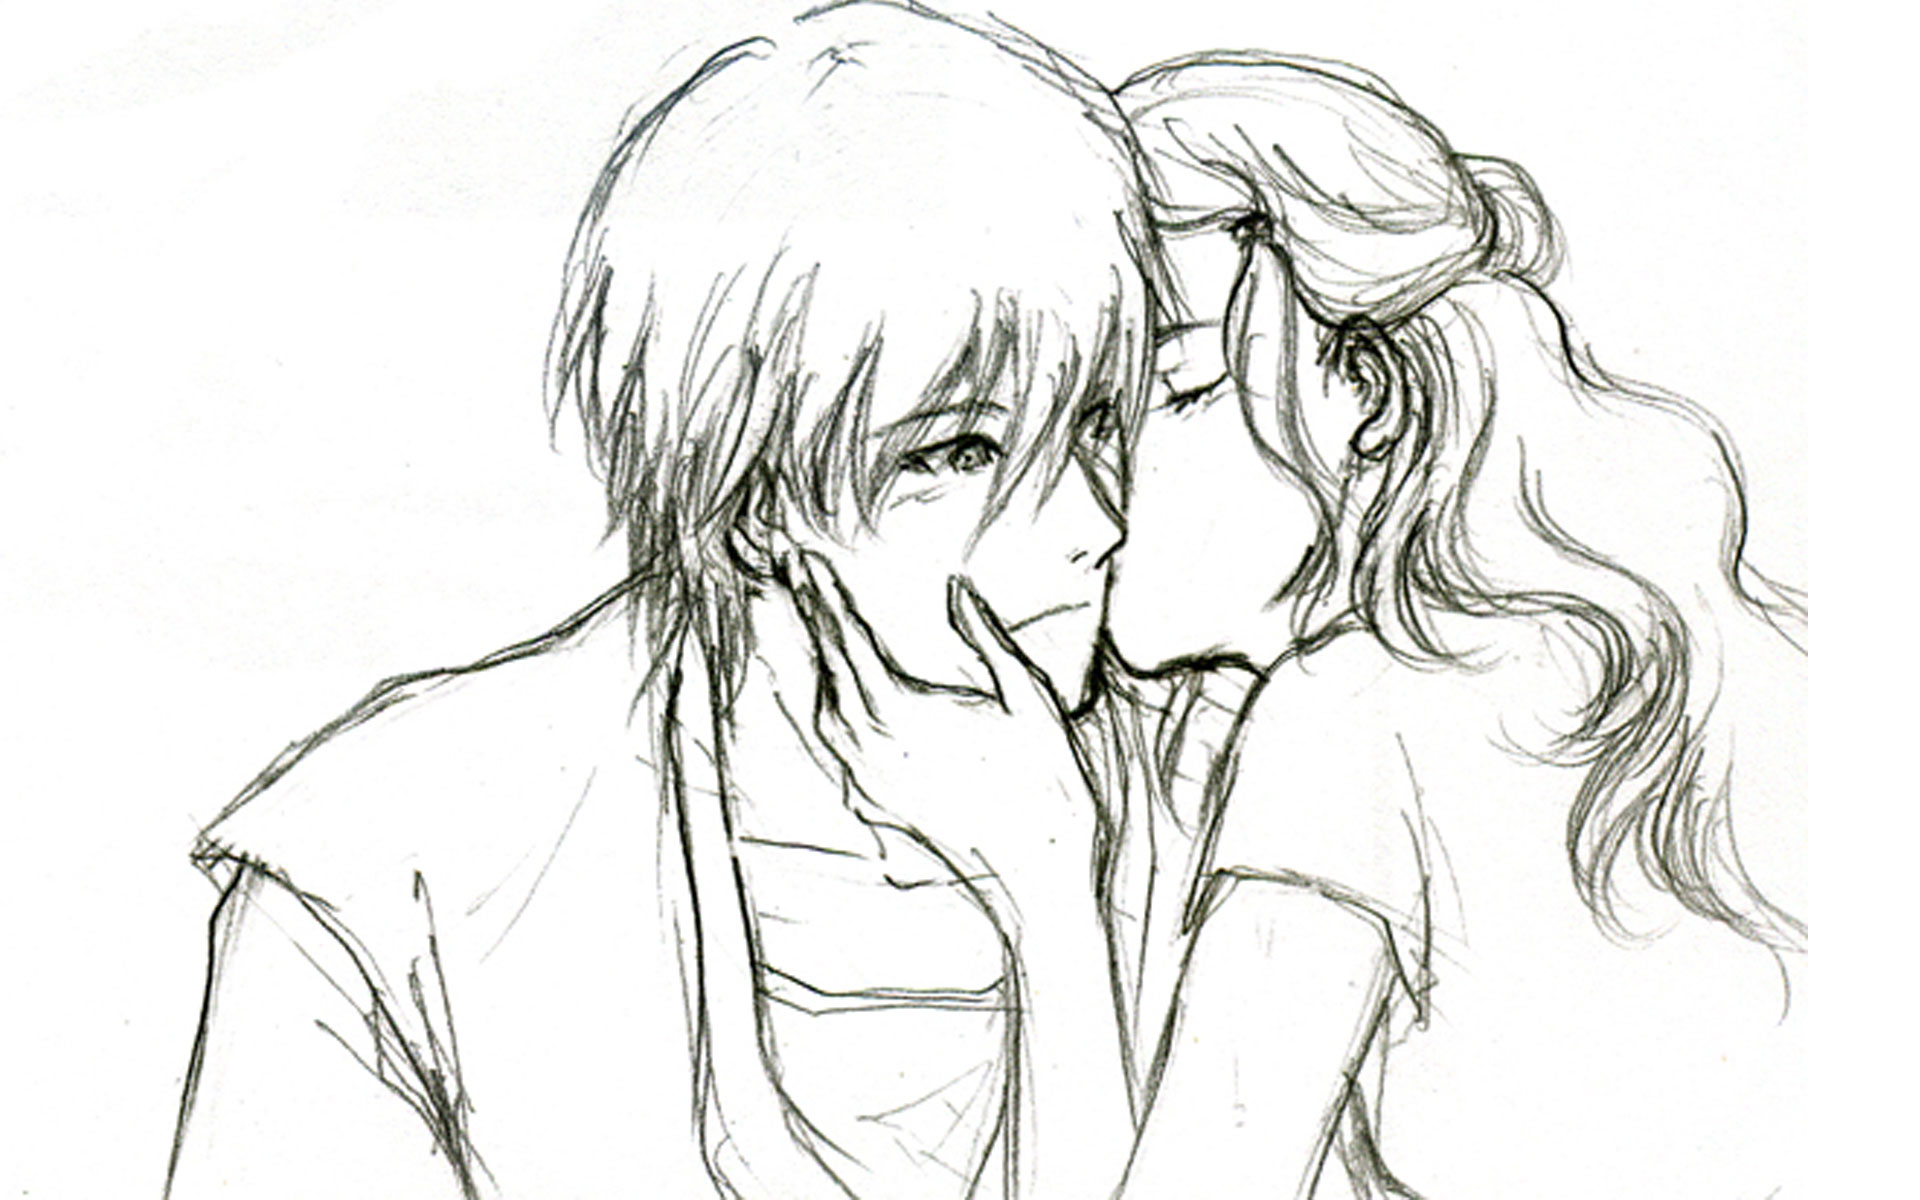 1920x1200 Sketch Of Friendship Boy And Girl Friendship Drawings Pencil